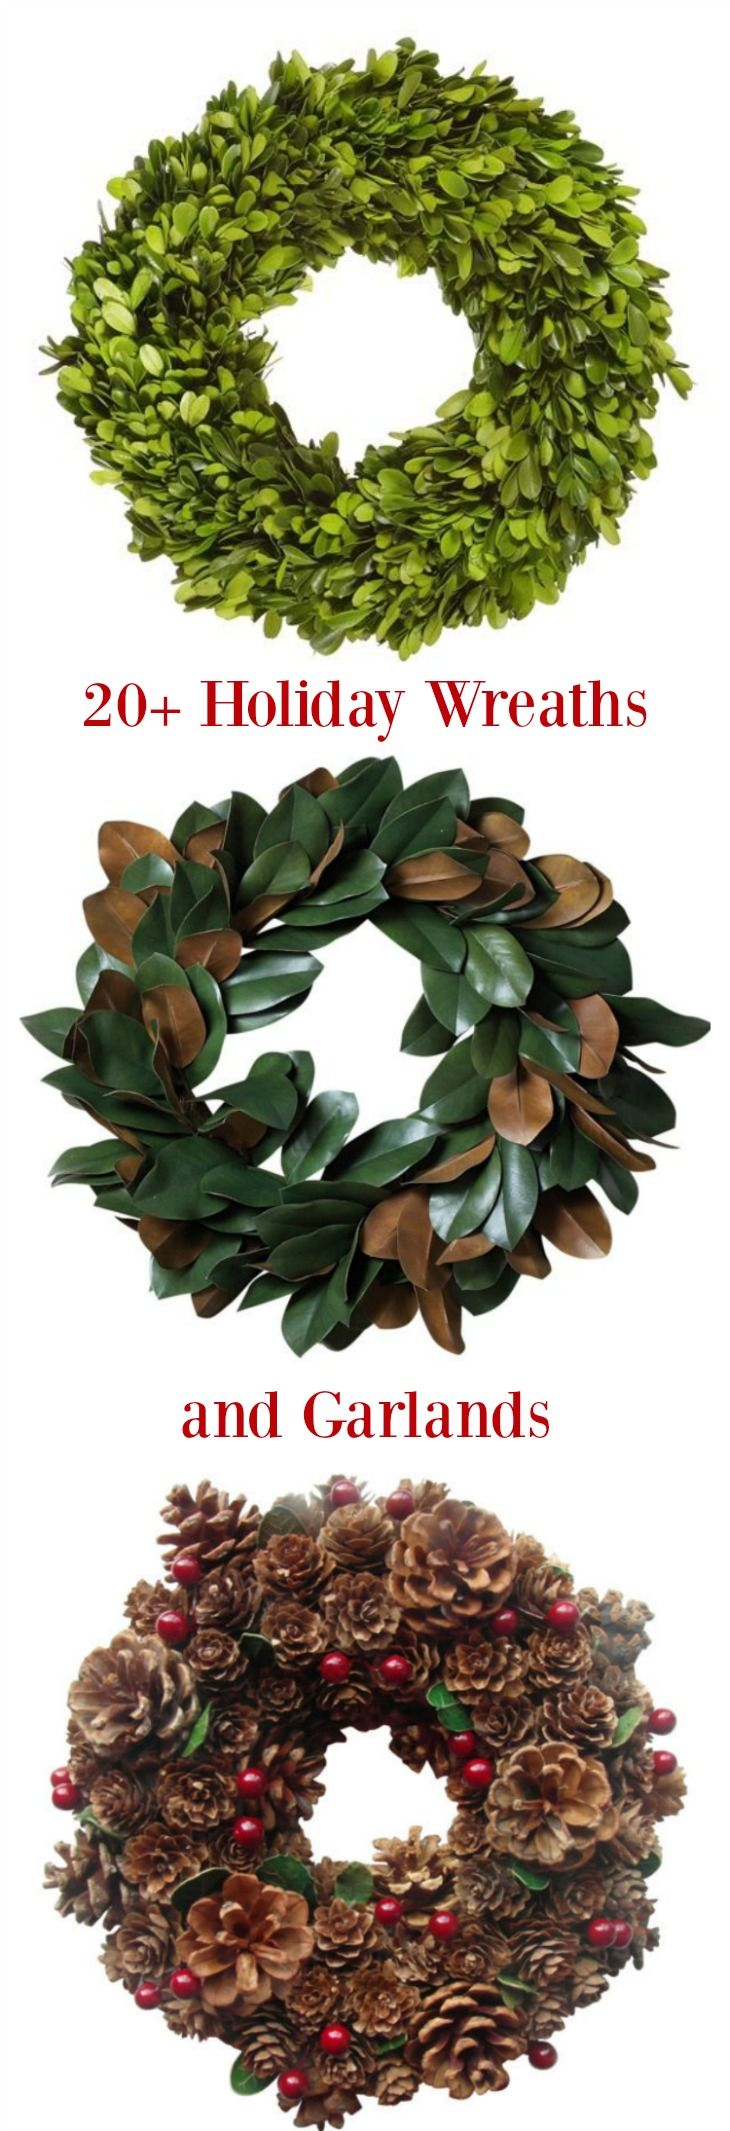 Choose from Preserved Boxwood Wreaths, Magnolia Leaf Wreaths, Pre-Lit Wreaths and more in this 20+ Holiday Wreaths and Garlands collection | Holiday Decorating Ideas